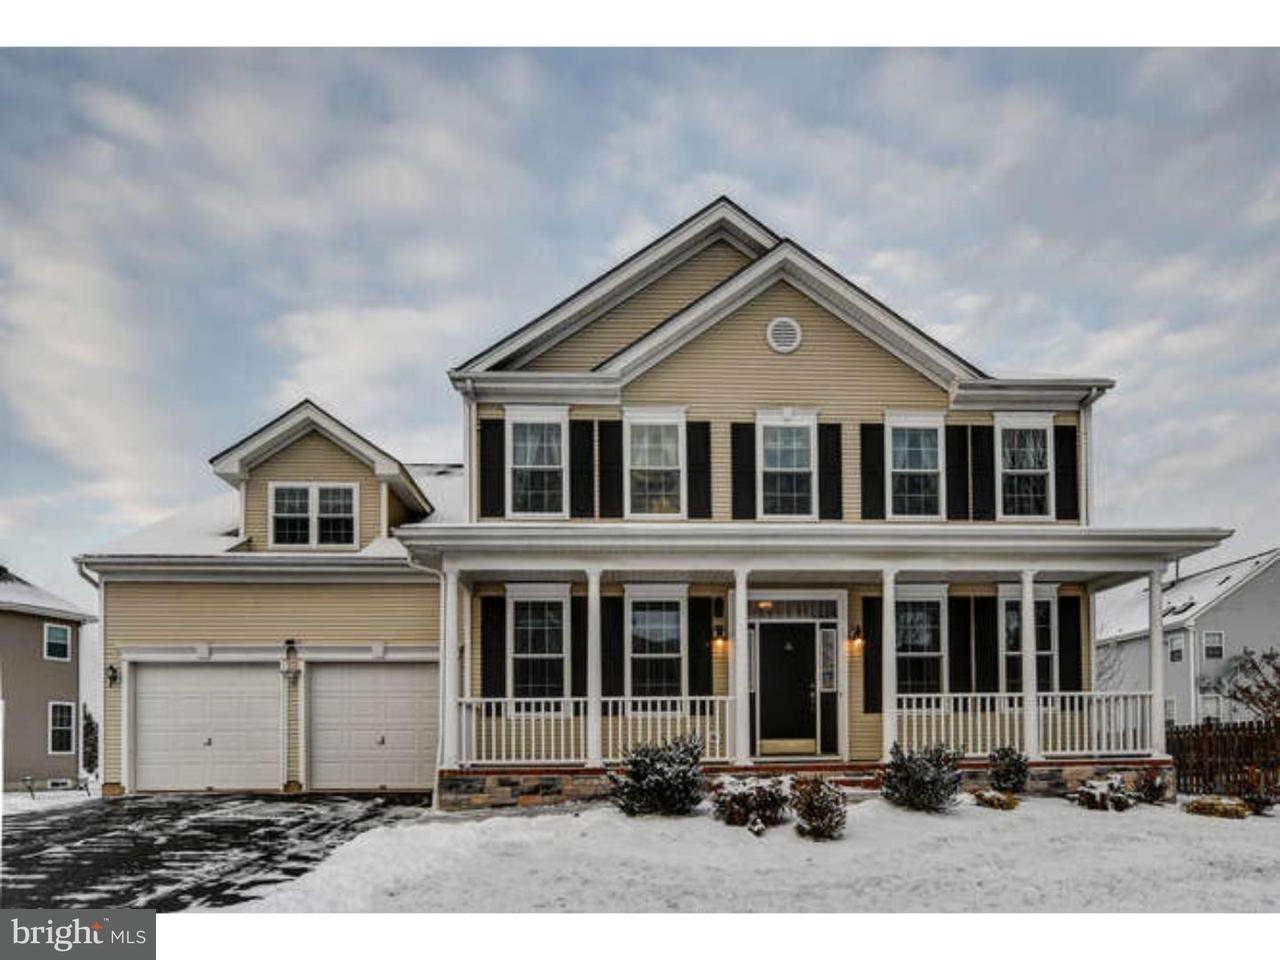 Single Family Home for Sale at 16 DOGWOOD Drive Plainsboro, New Jersey 08536 United StatesMunicipality: Plainsboro Township